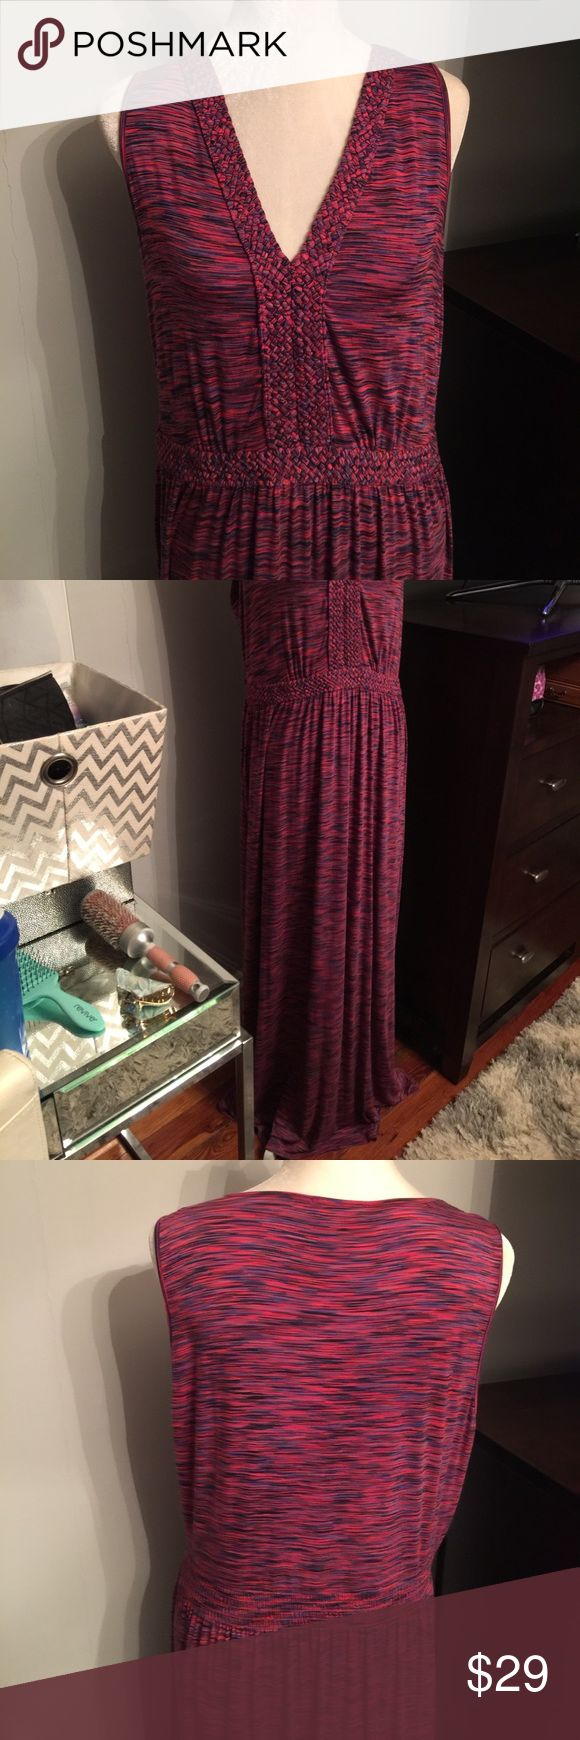 """🆕 Spense Maxi Dress NWOT 44"""" long from bottom of waistline.  Love this dress, like brand new, bought on Posh and seller never wore - but too long on me.  I'm 5'7"""".  97% viscose, 3% spandex Spense Dresses Maxi"""